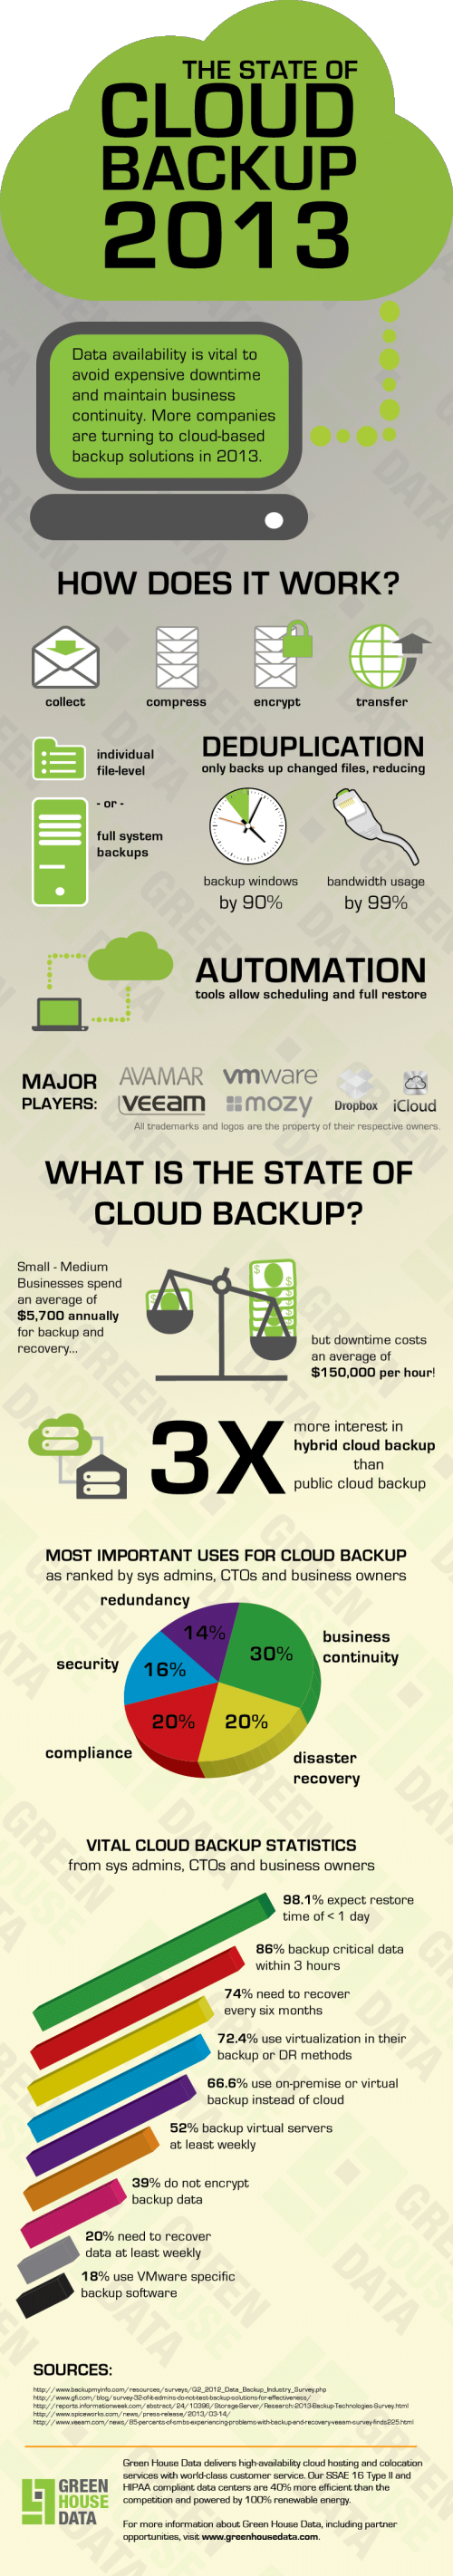 Cloud backup infographic